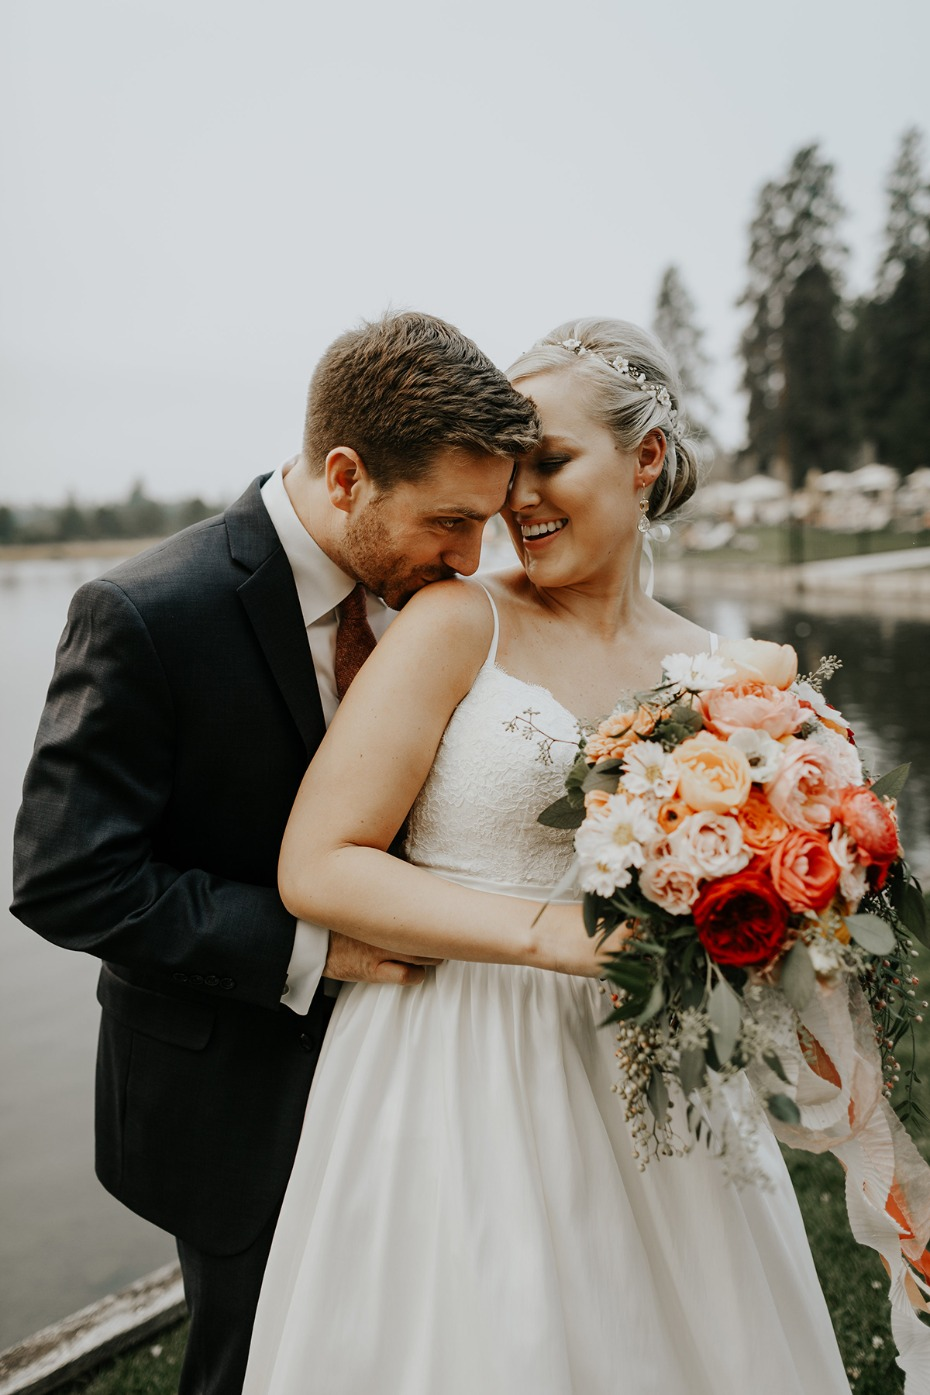 adorable bride and groom wedding portraits